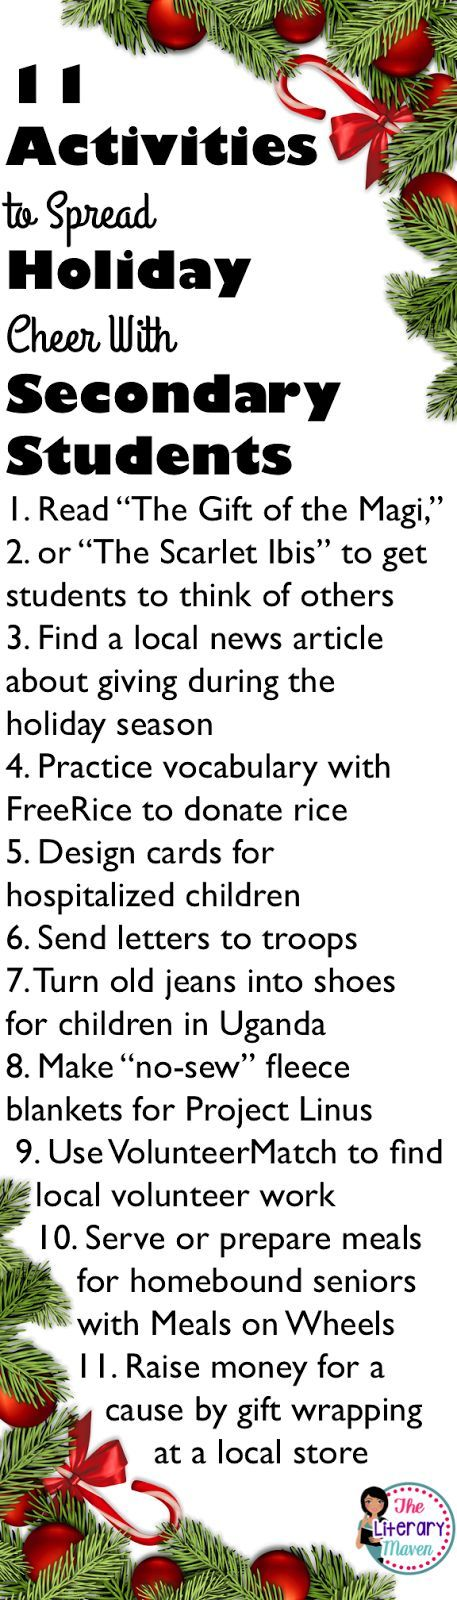 Instead of trying to block out the holiday merriment, spread cheer inside your classroom by inspiring students with the texts you read, finding ways to give inside the classroom, and engaging students in volunteer work outside of the classroom.